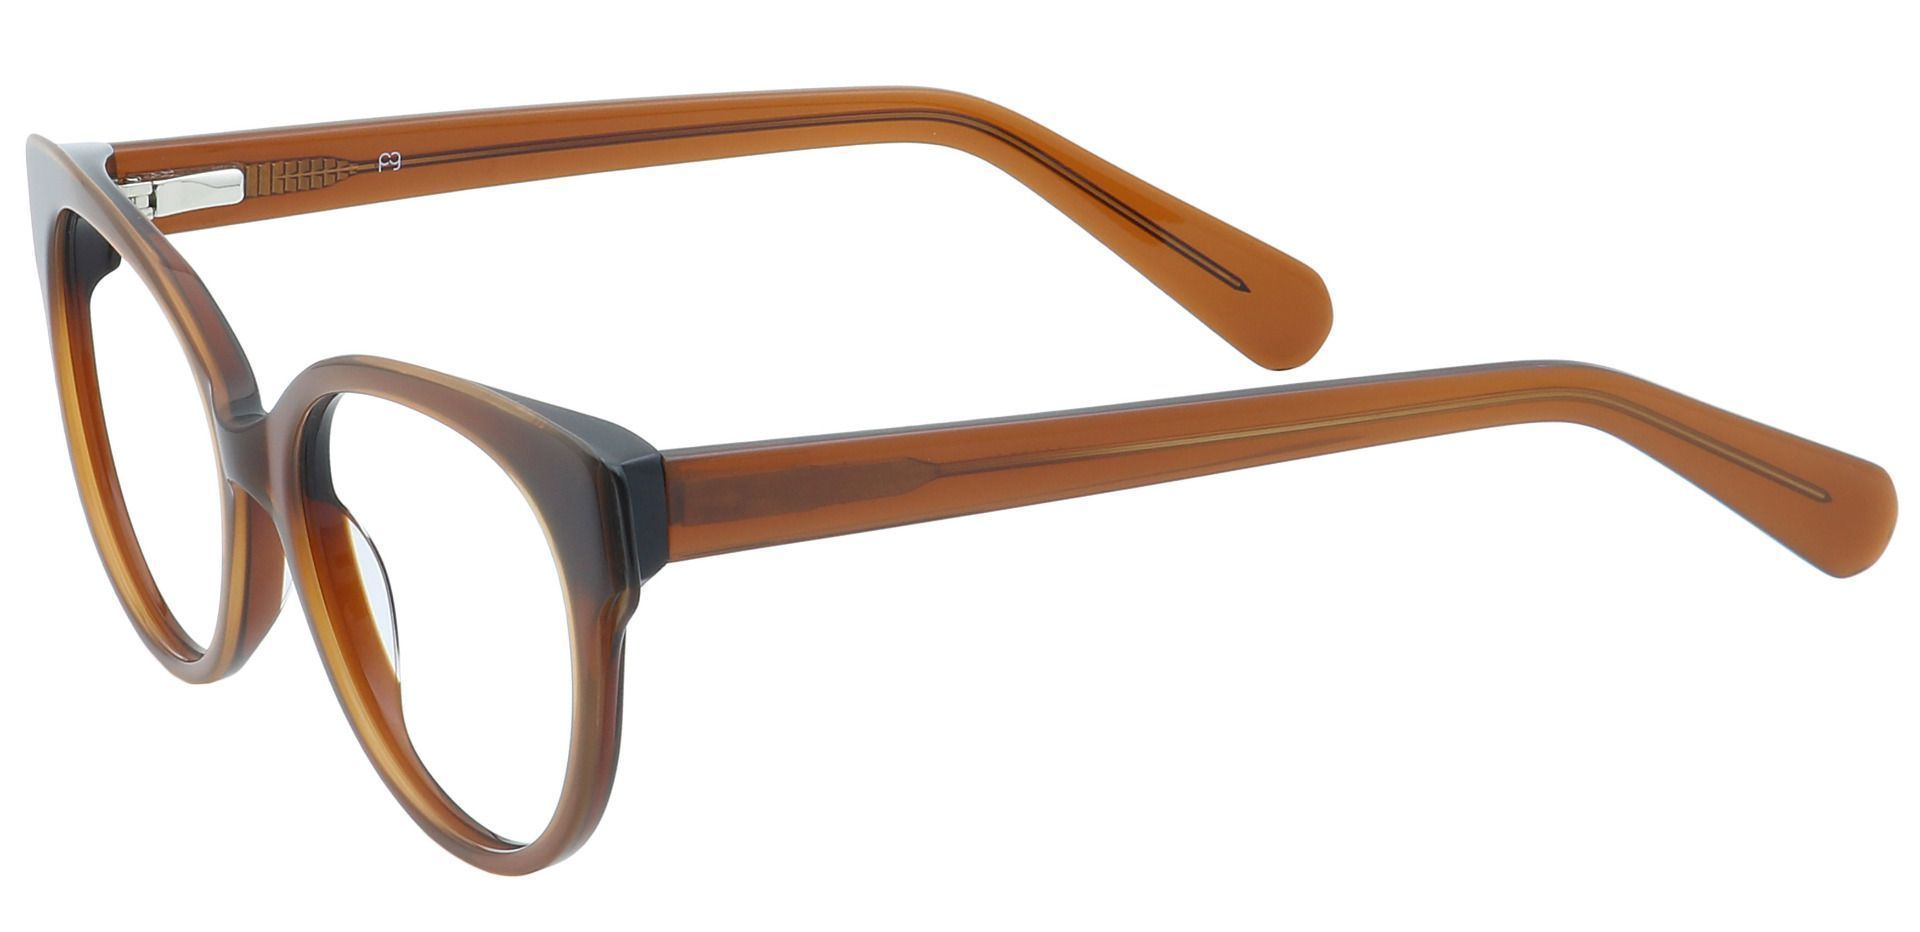 DJ Oval Blue Light Blocking Glasses - Caramel